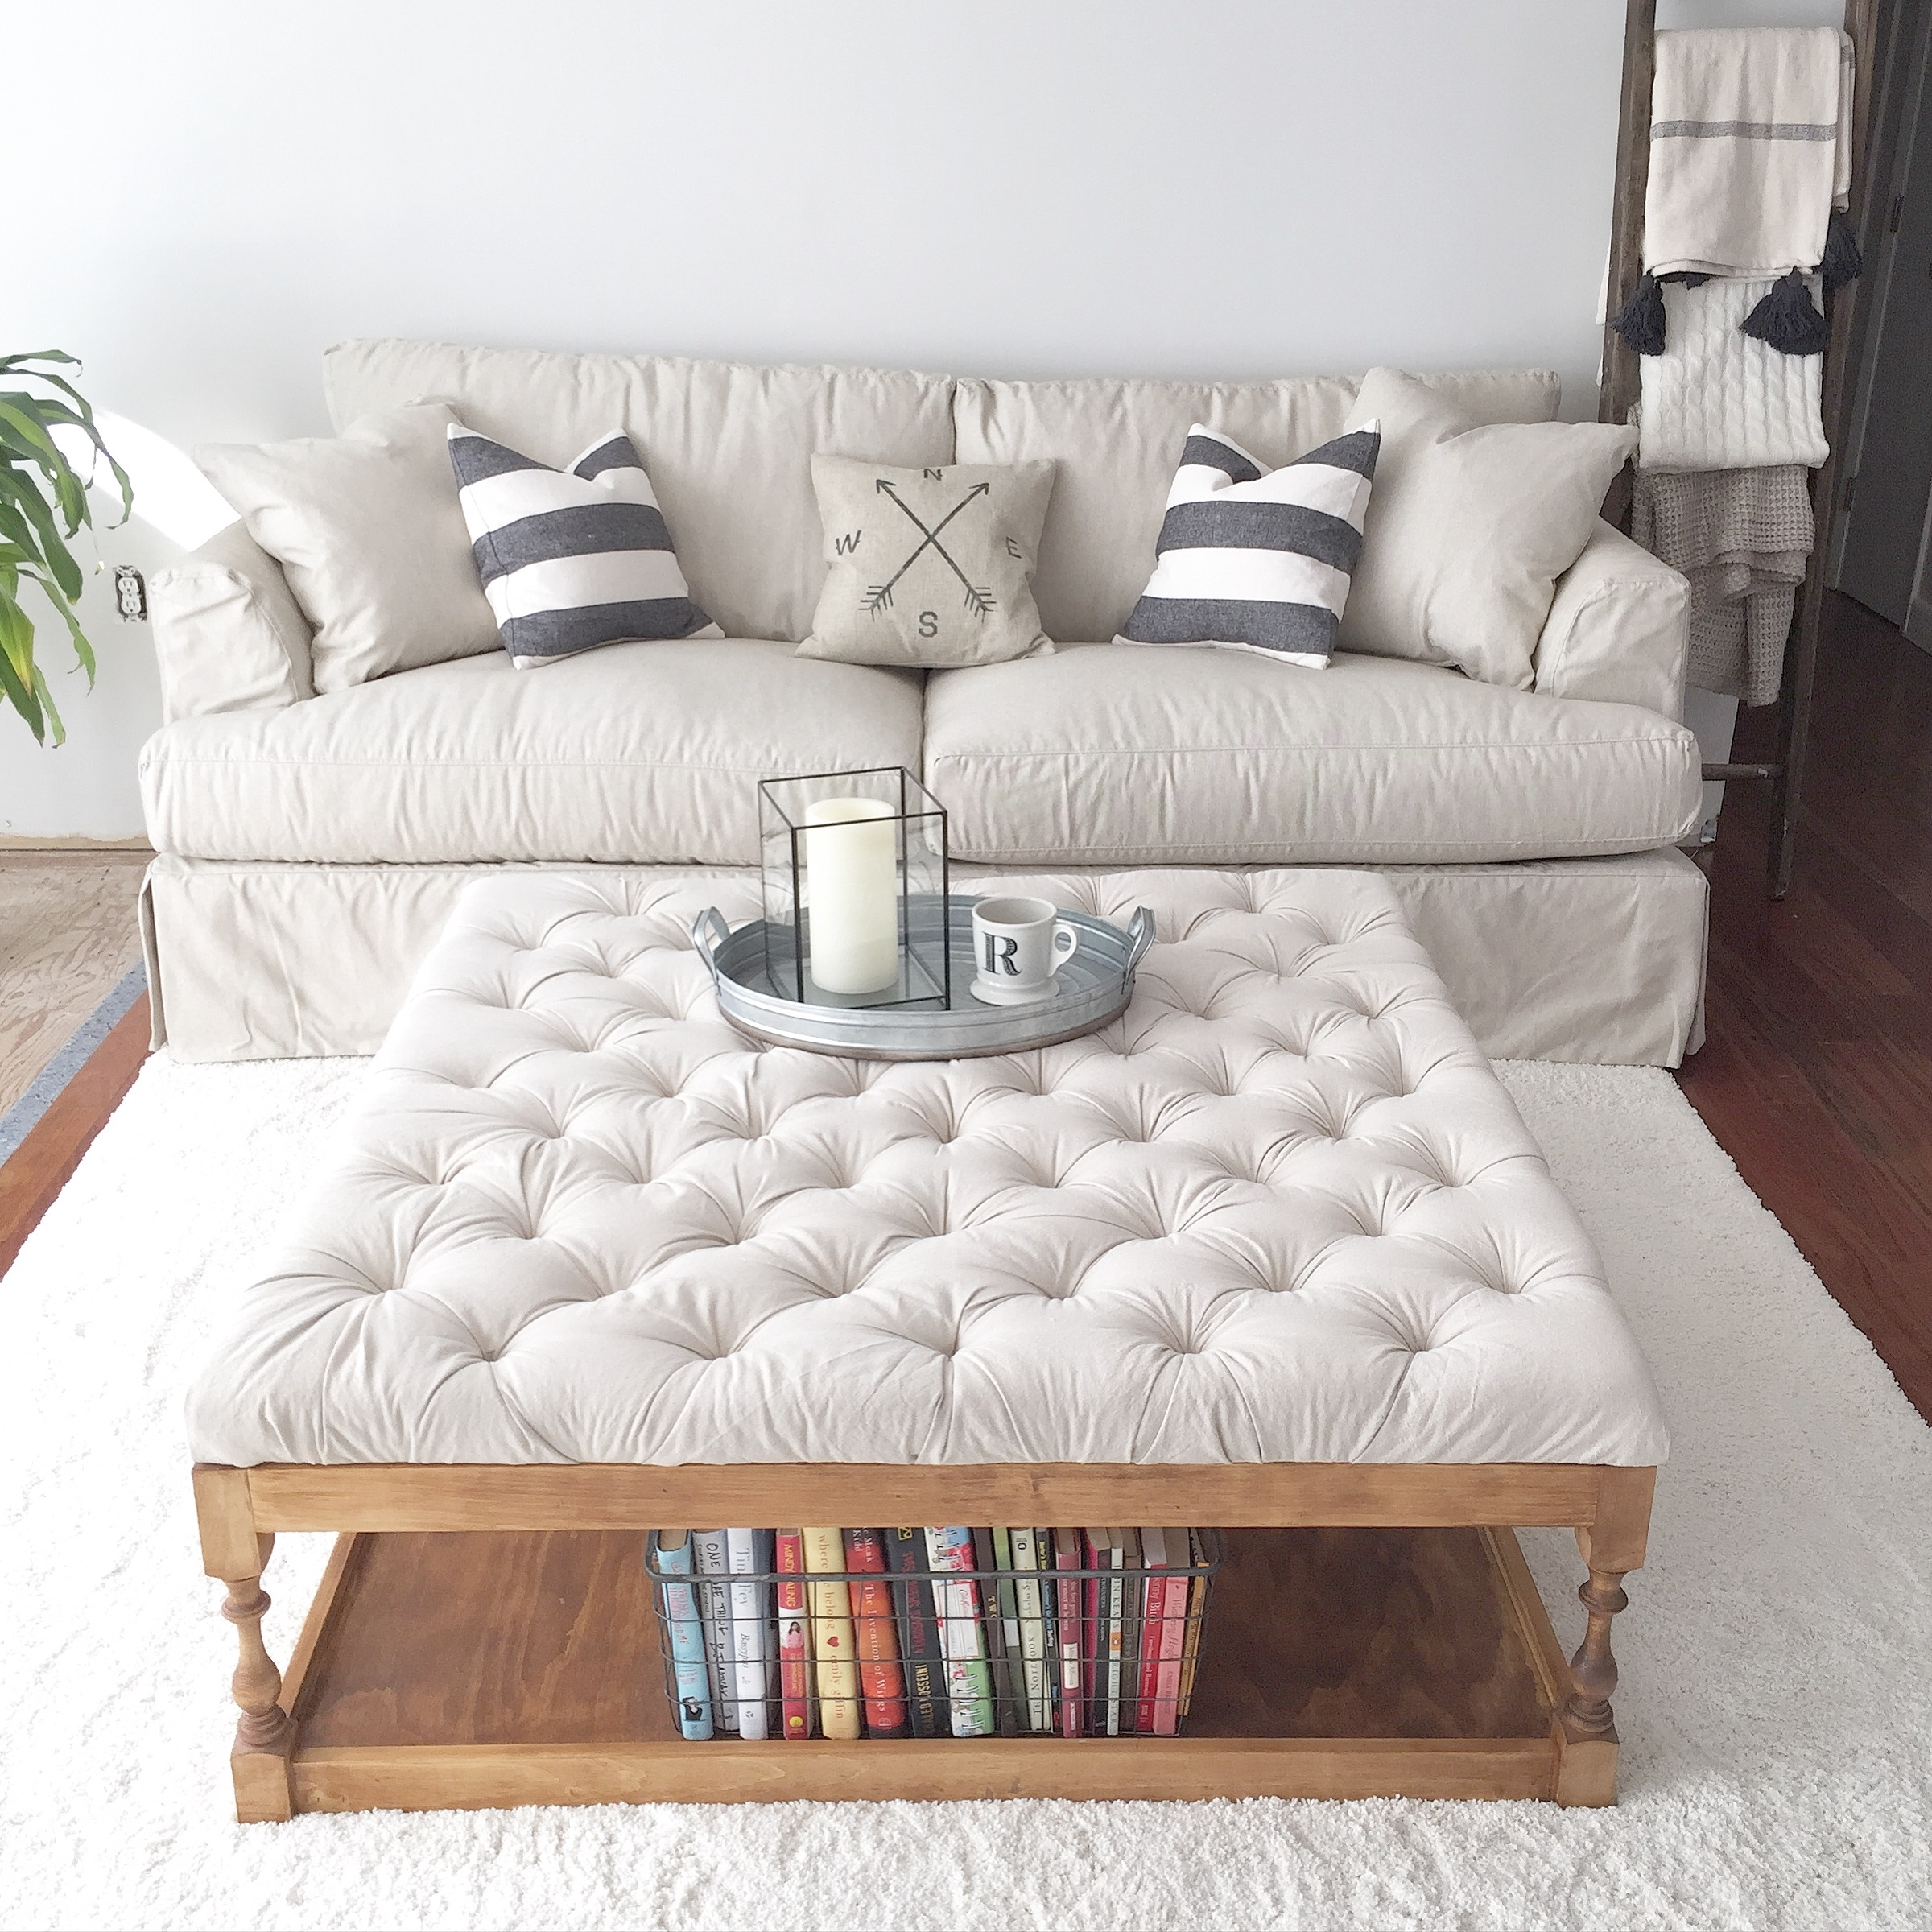 Royal Charm Button Tufted Coffee Tables For Interior | Trends4Us regarding Button Tufted Coffee Tables (Image 21 of 30)